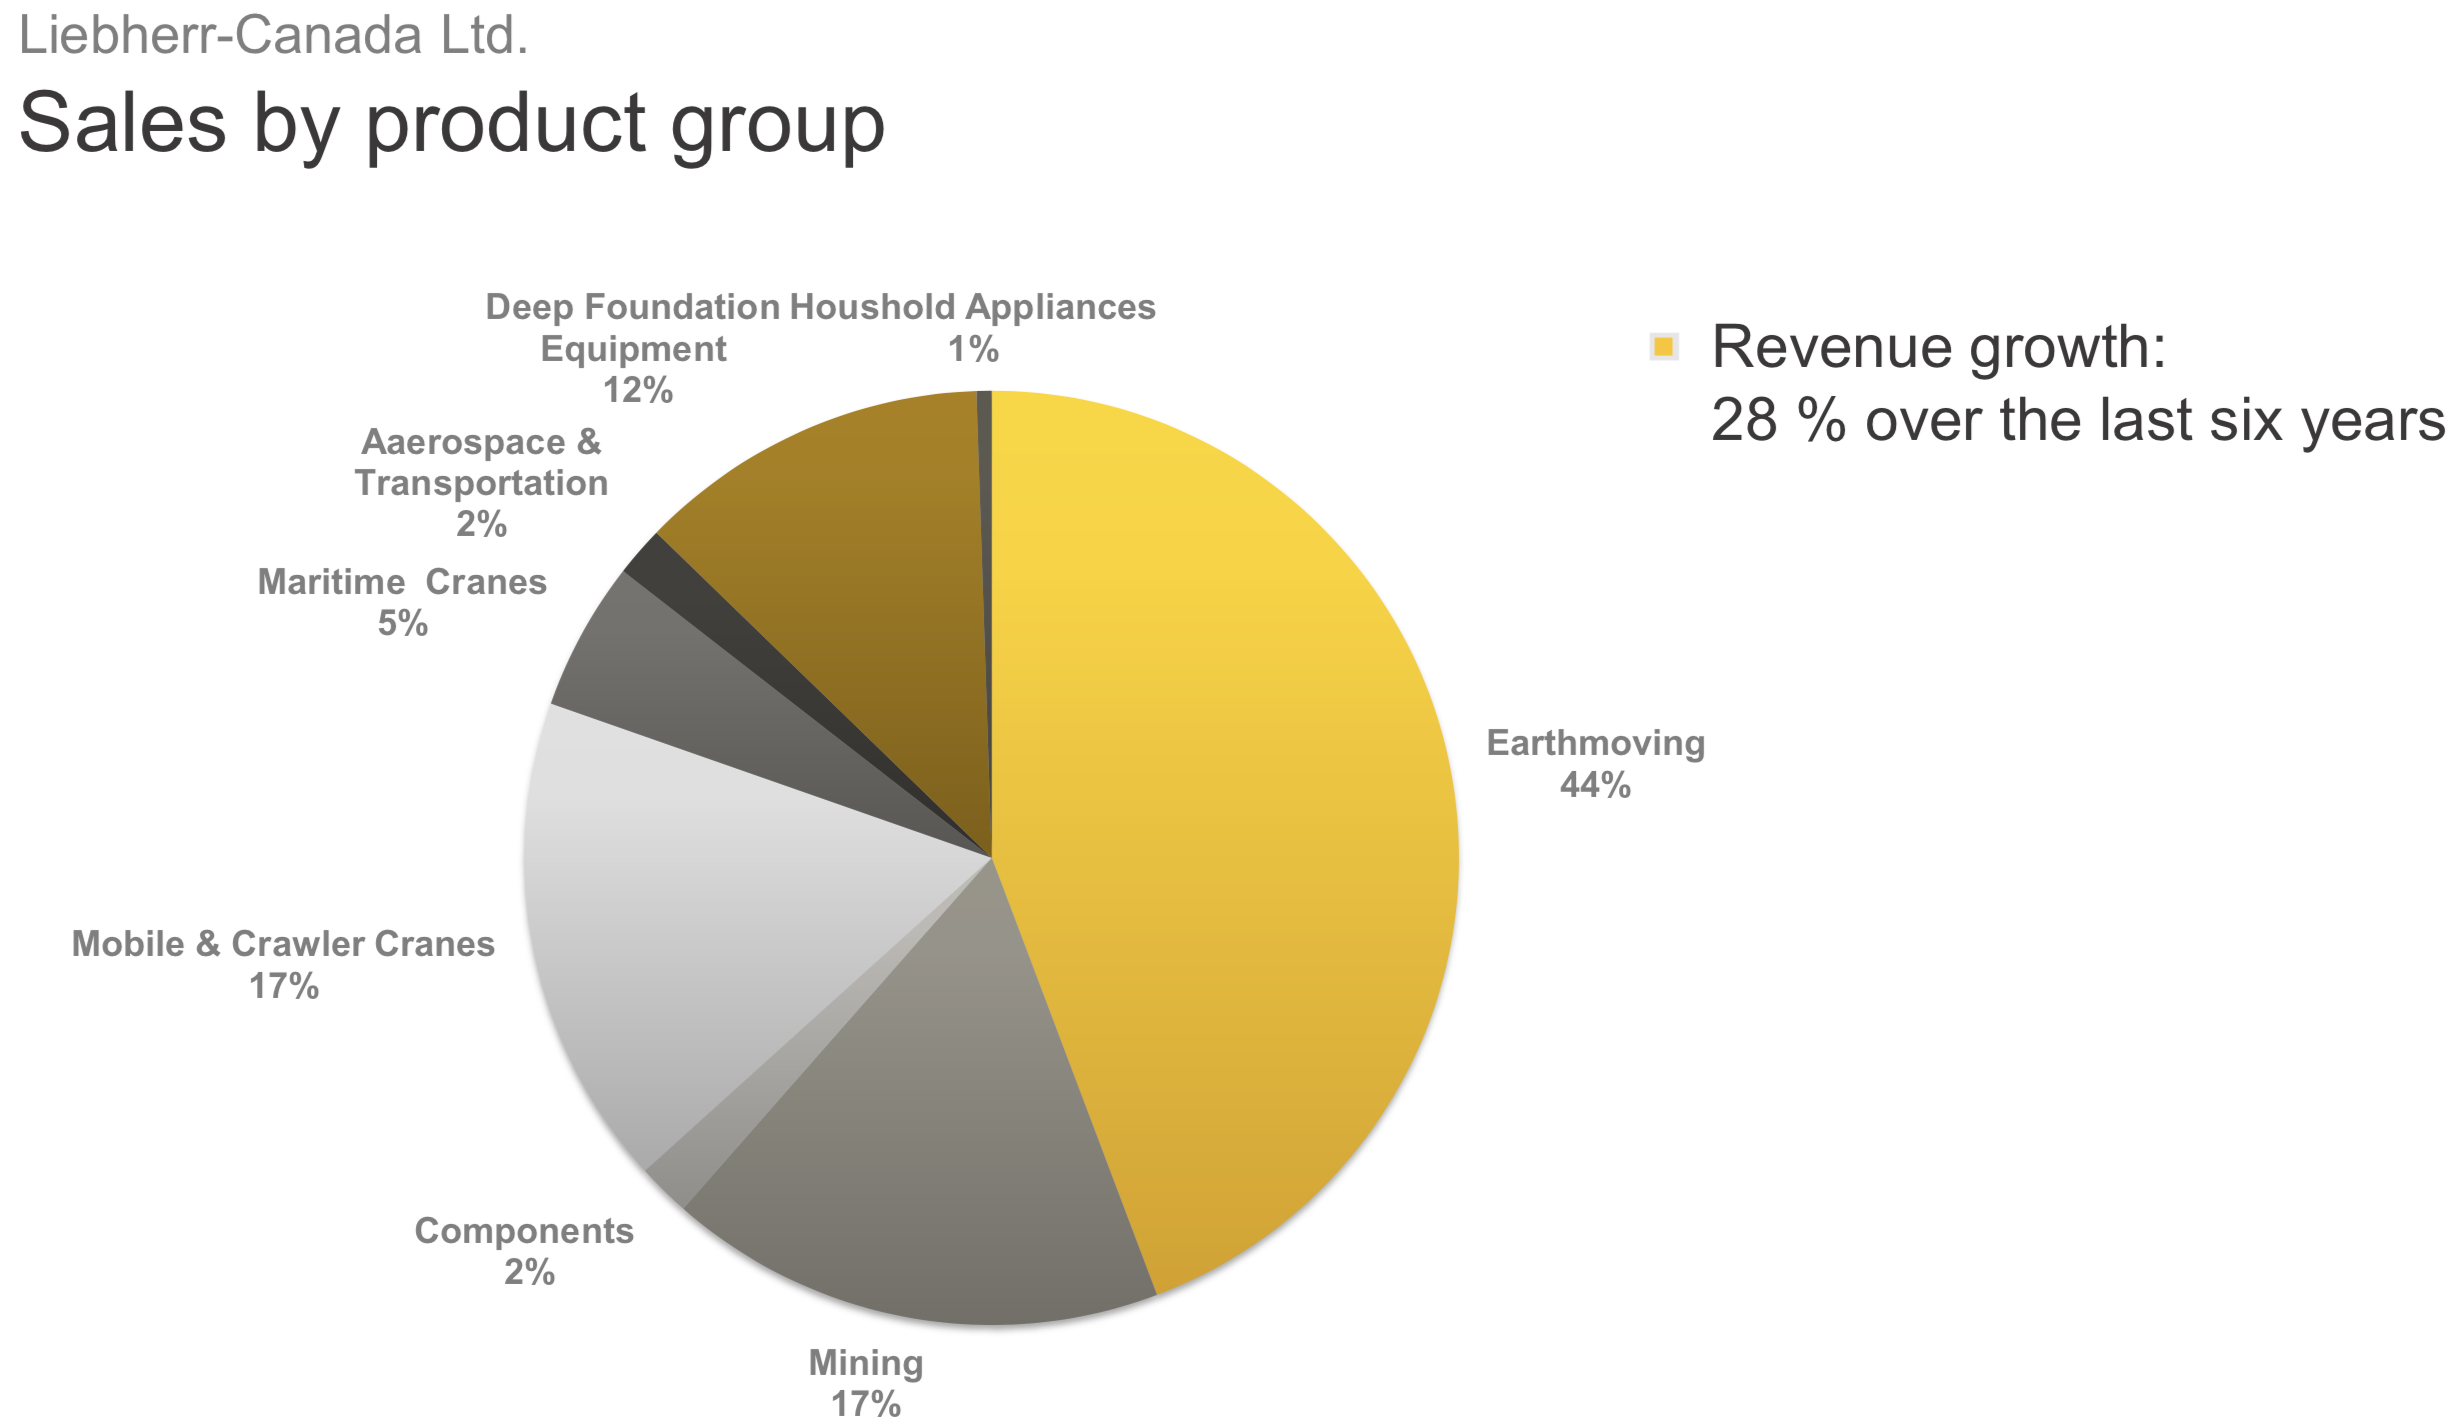 Liebherr-Canada Ltd. Sales by product group pie chart